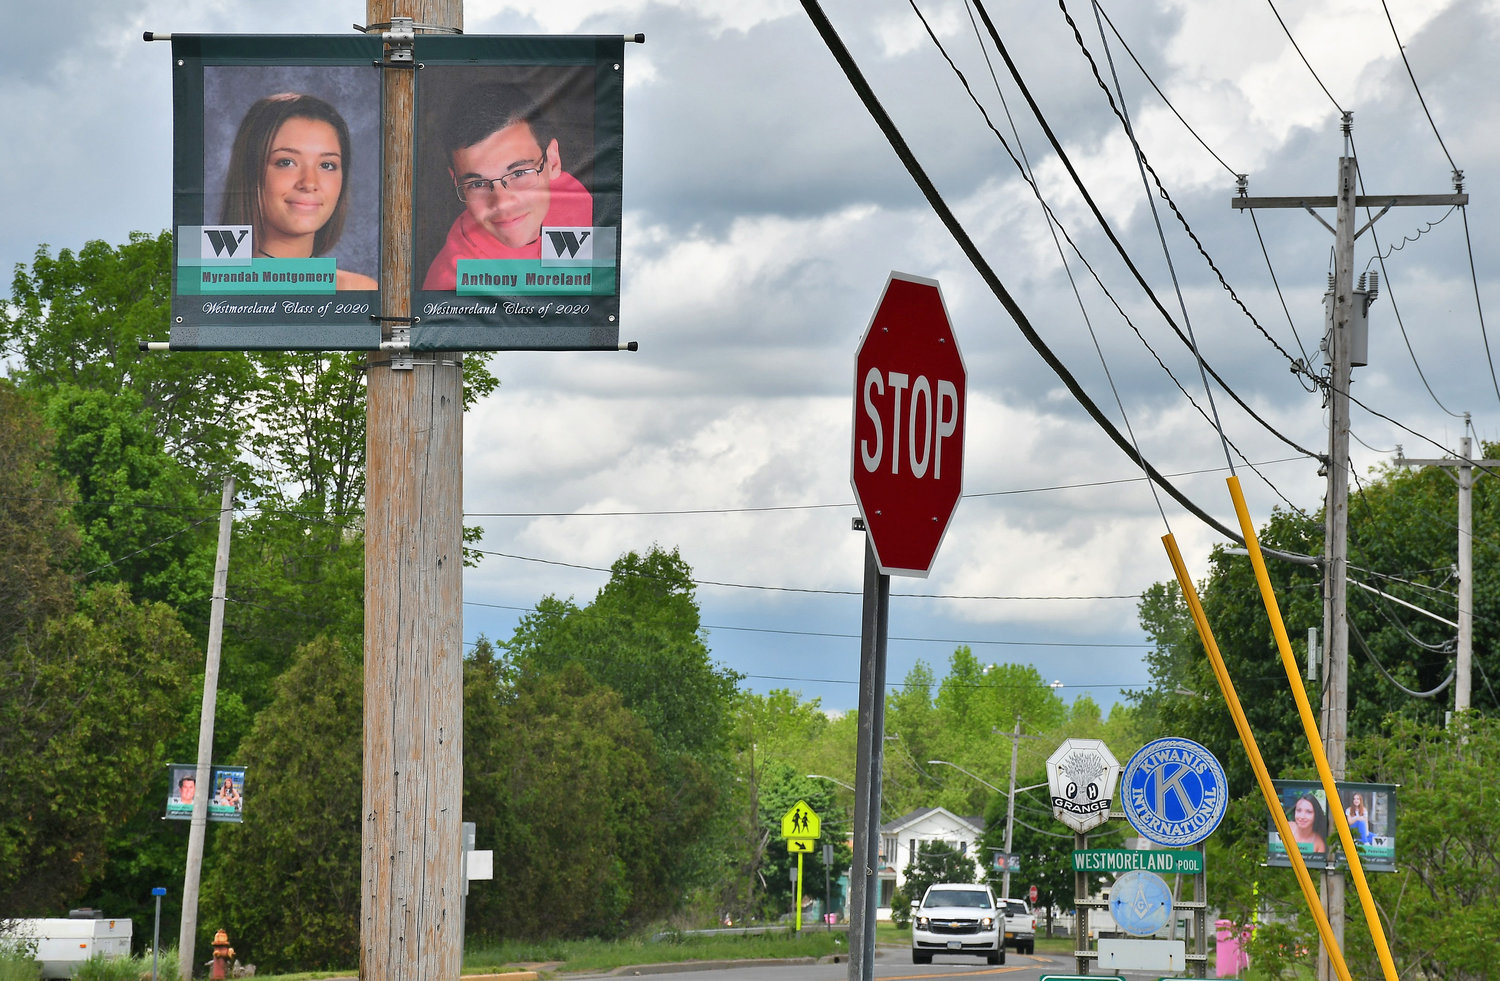 SENIOR STREET — The Westmoreland Jr. Sr. High School graduating class of 2020 has been honored with pictorial banners presently displayed along Route 233 in Westmoreland. In all, 60 banners, 59 seniors and one class banner were hung by the Westmoreland DPW for the school.